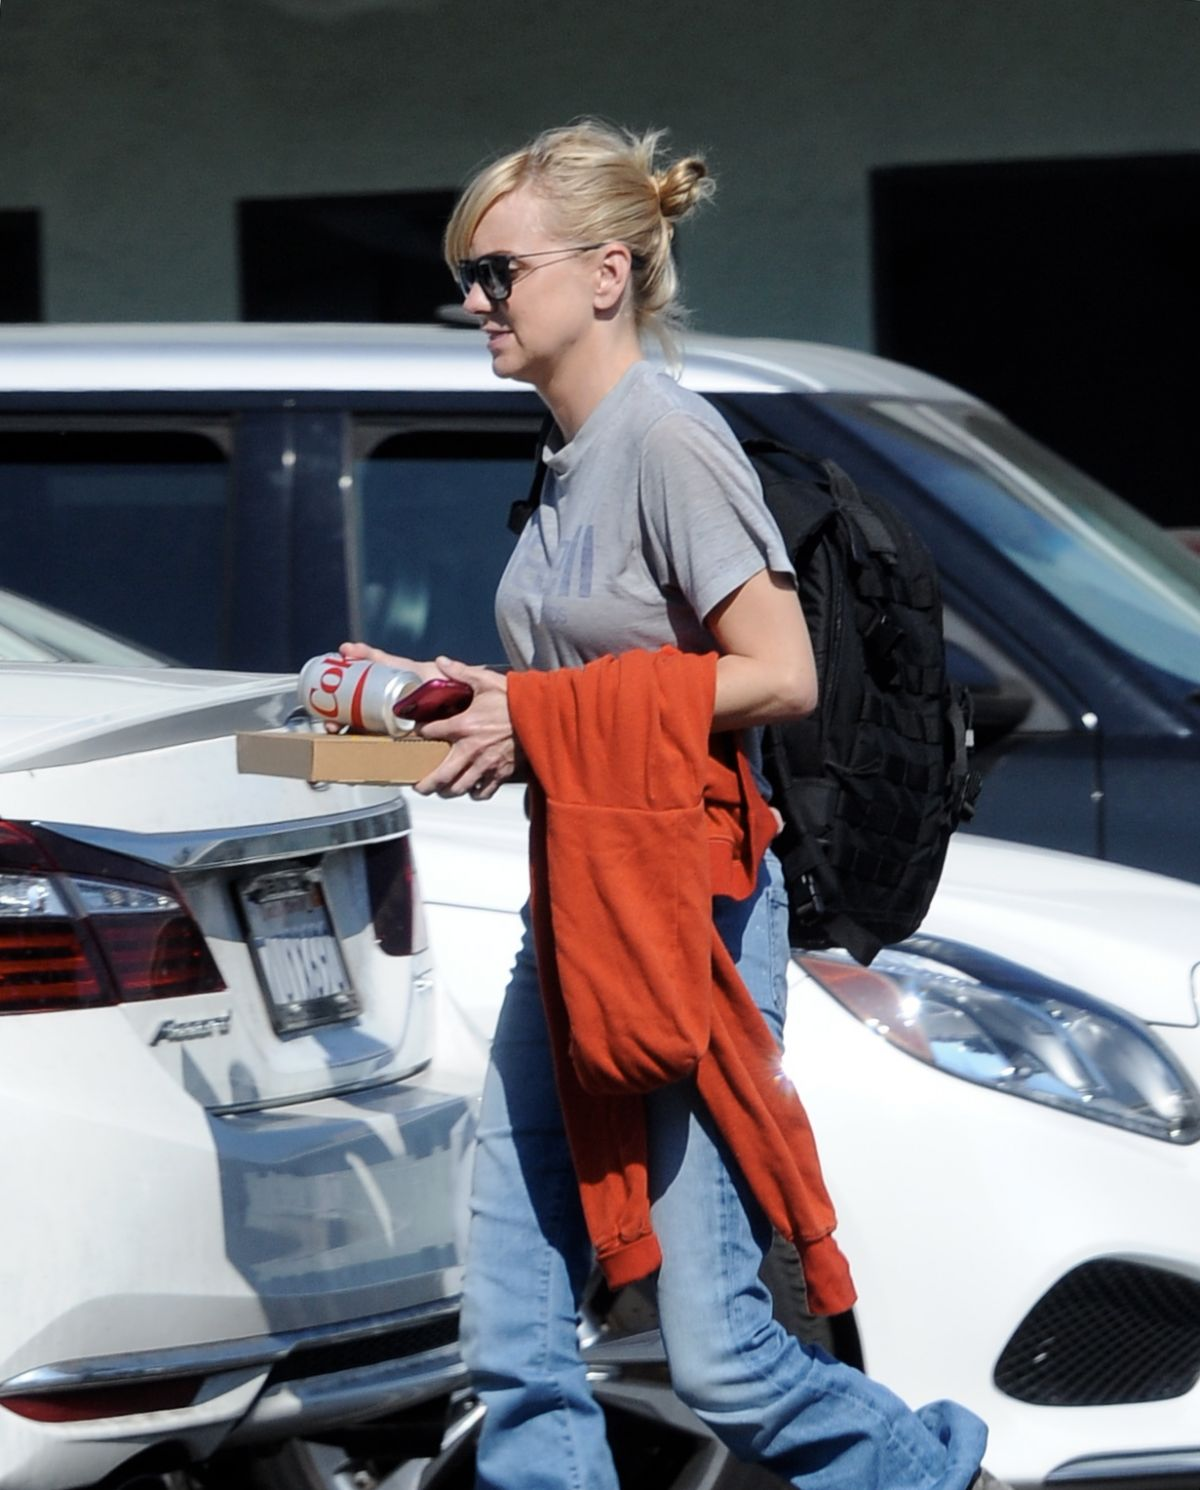 Filing For Divorce: ANNA FARIS Emerges For The First Time Since Filing For